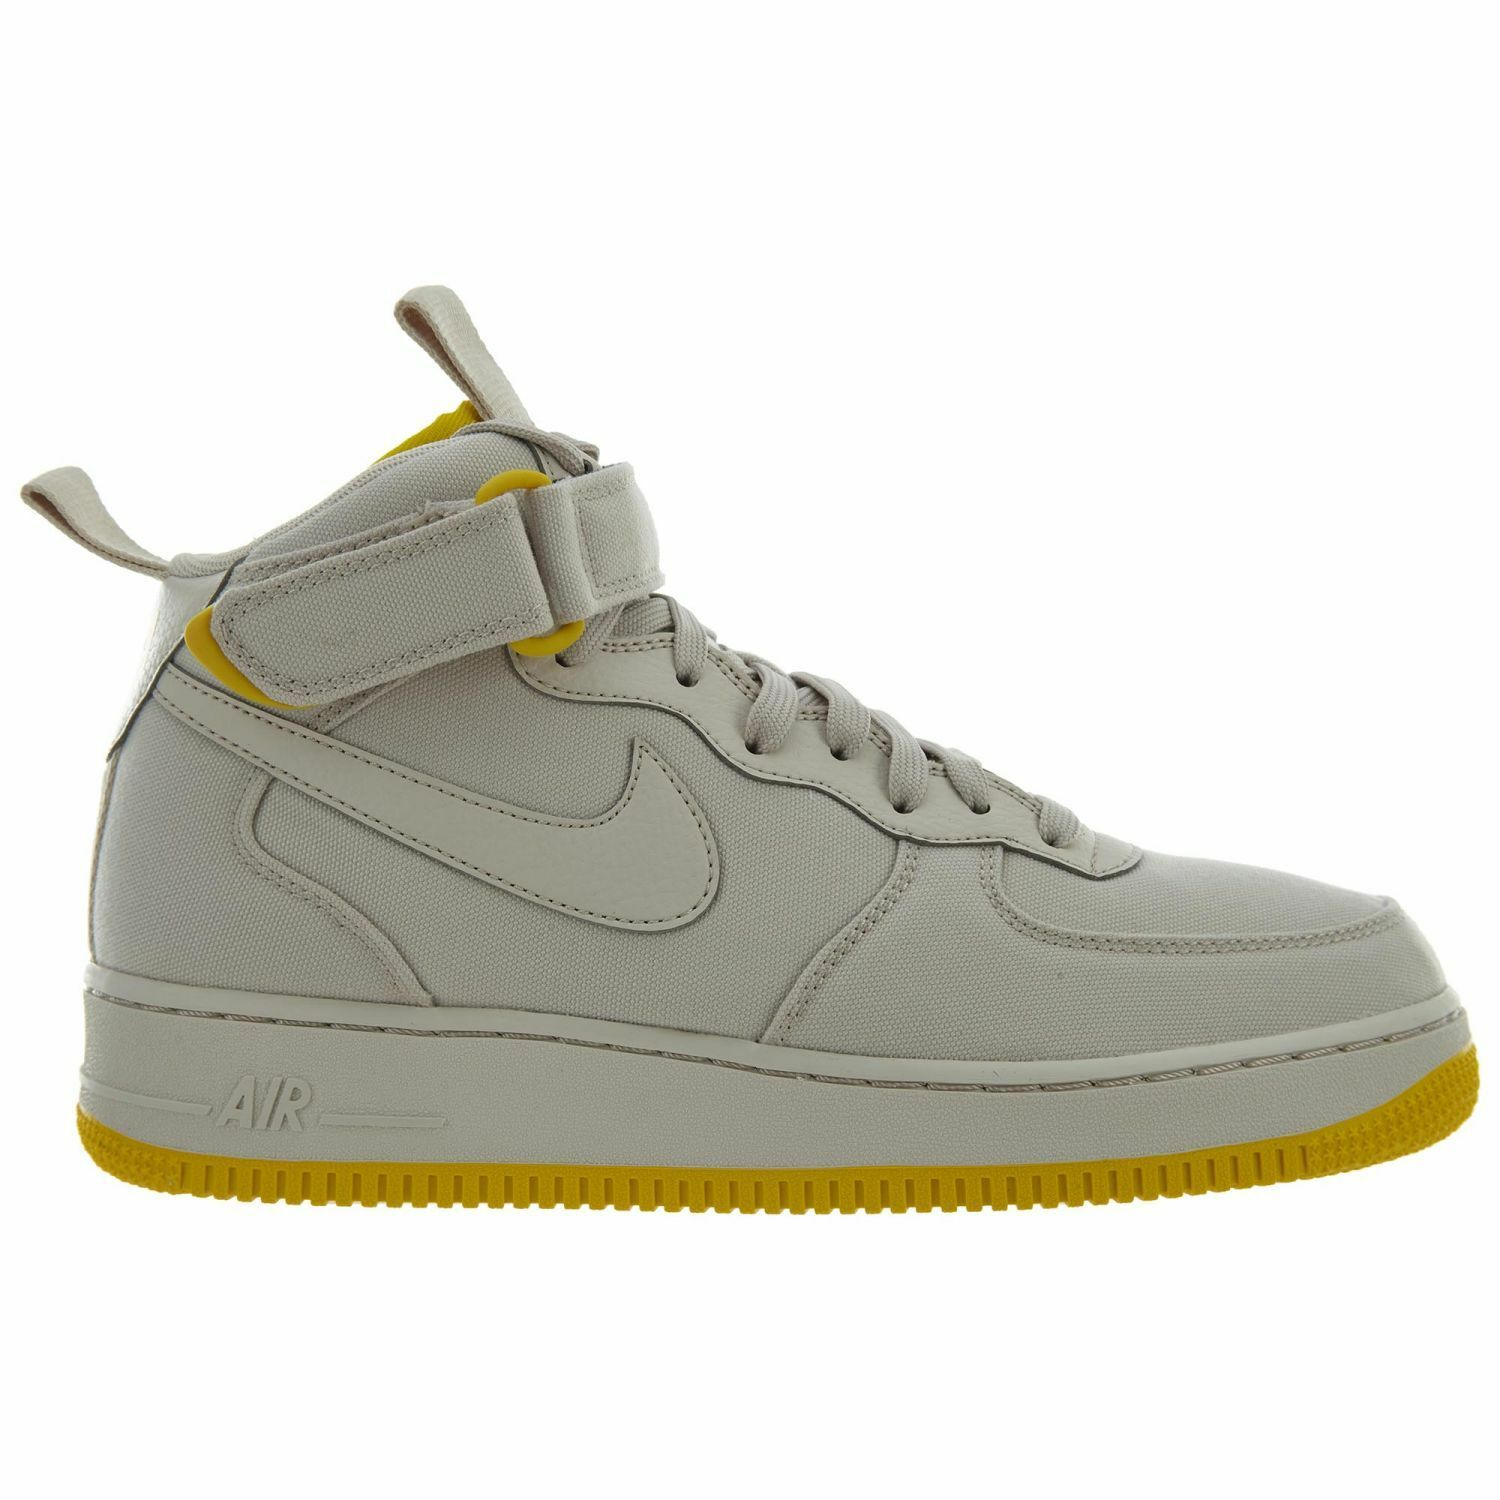 Nike Air Force 1 Mid Canvas Mens AH6770-002 Desert Sand Sulfur Shoes Size 9.5